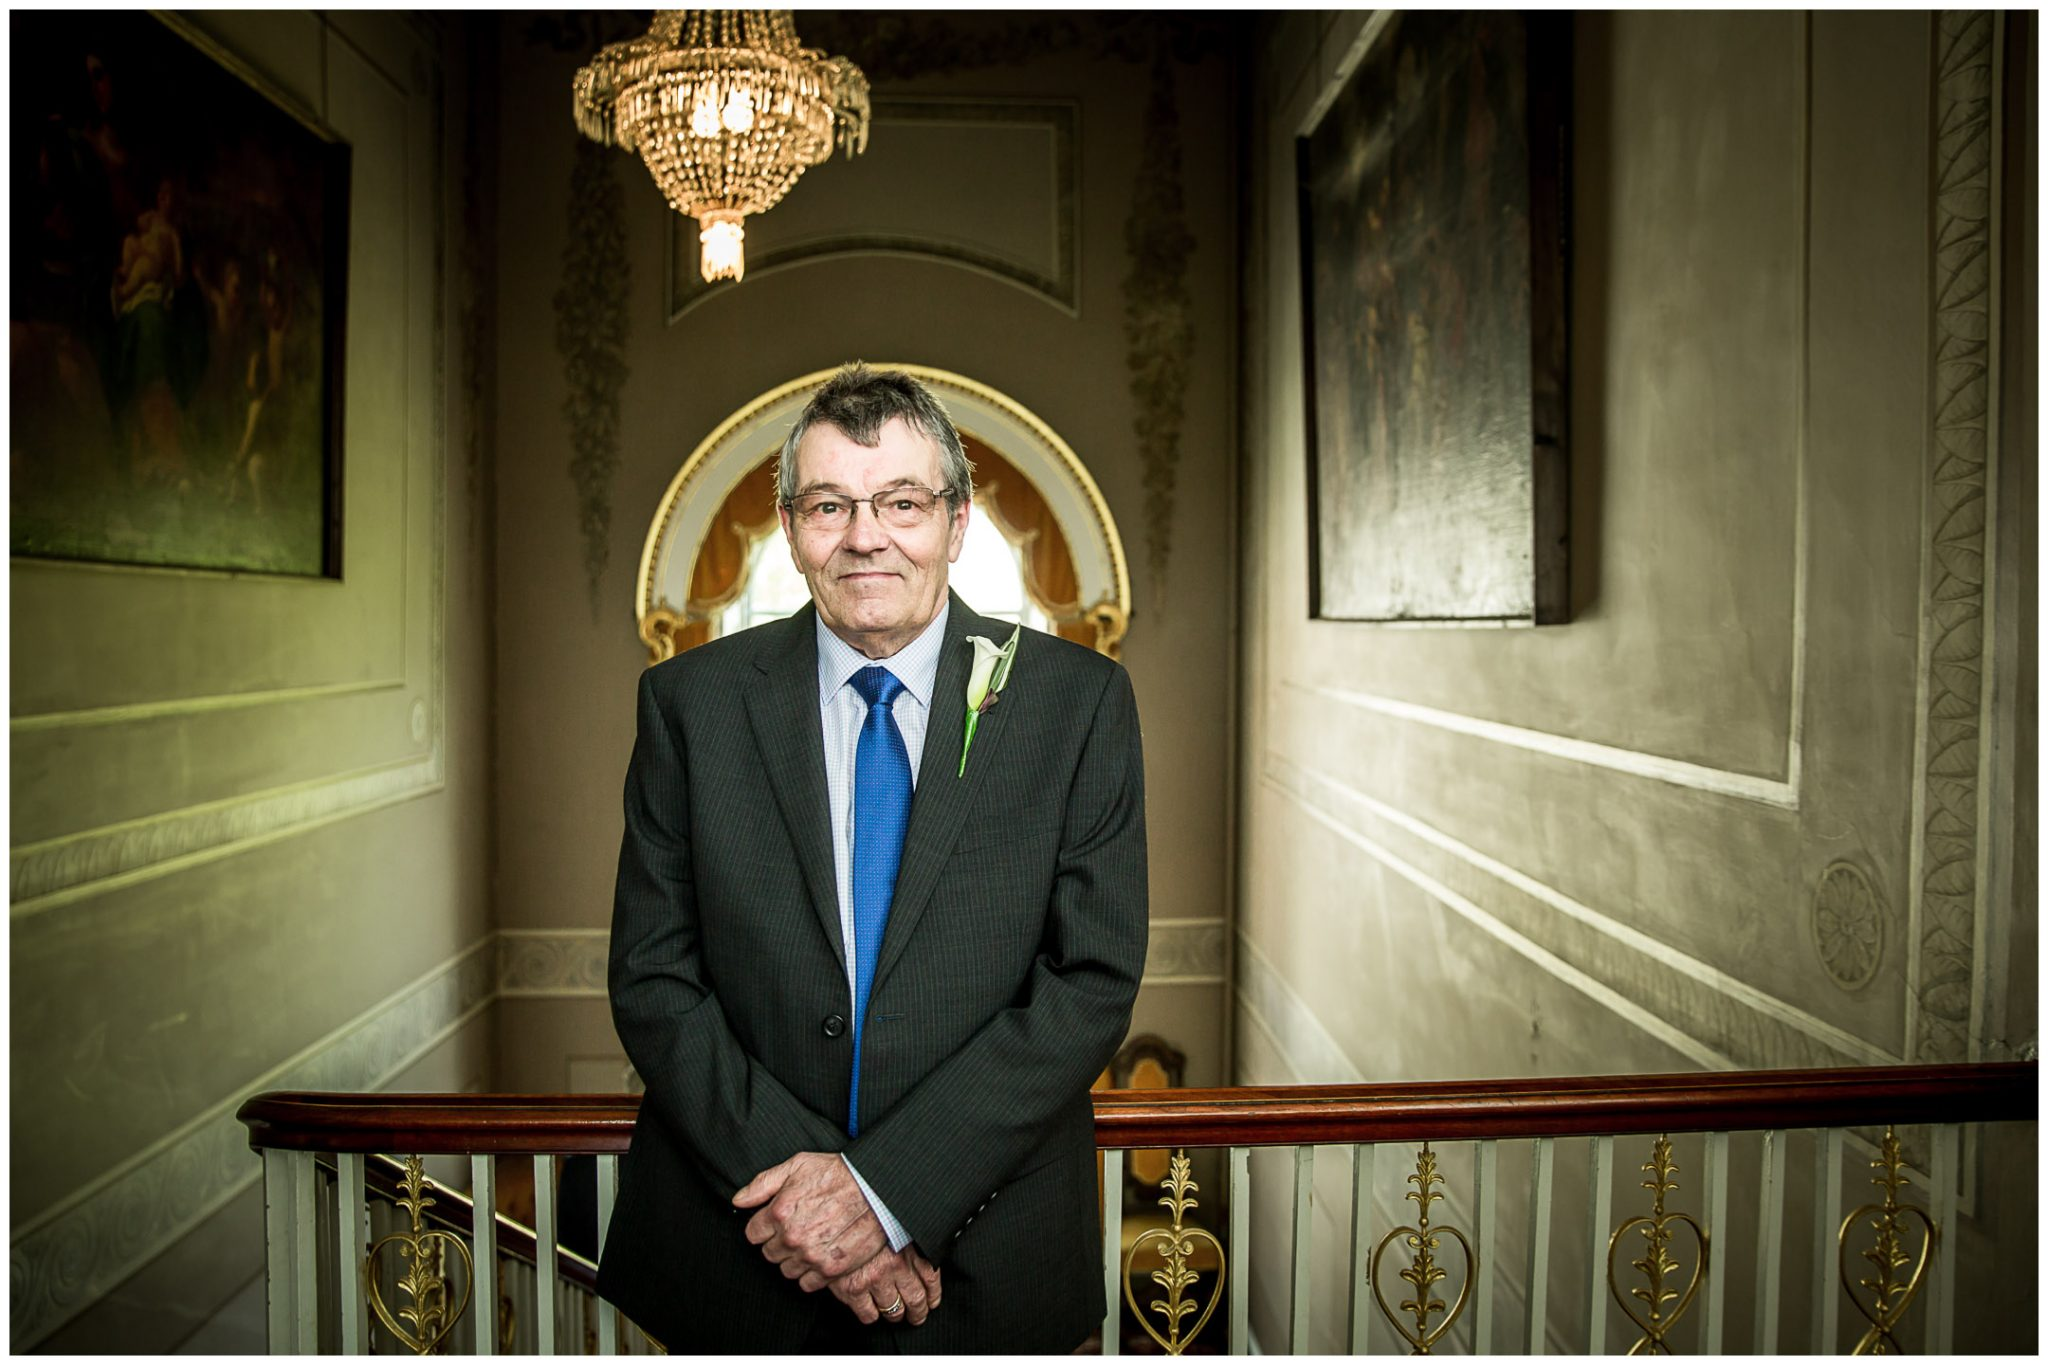 Avington Park wedding photography father of the bride waits for daughter before ceremony